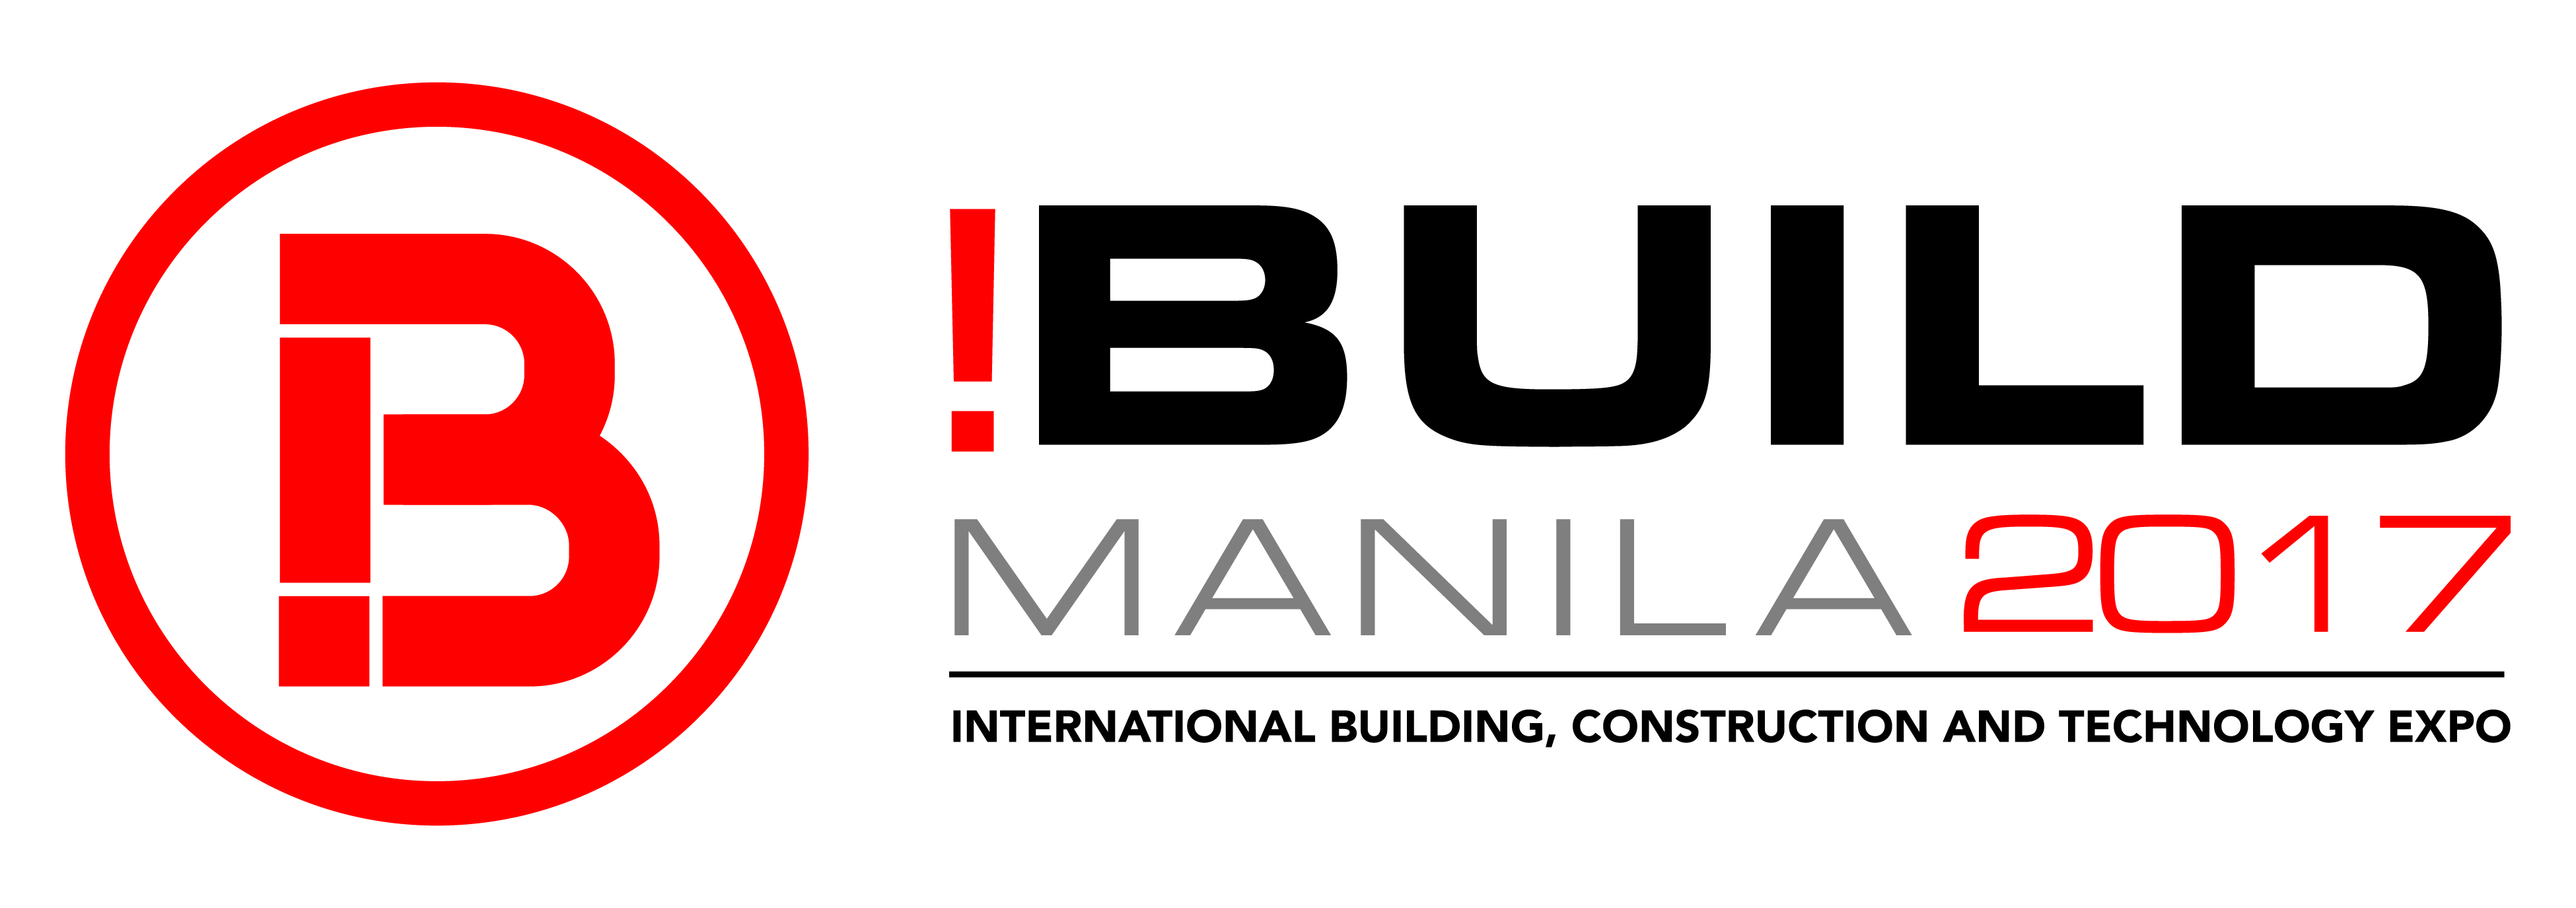 I build manila 2017 connecting builders of nations philippine world trade center manila with the objective to innovate educate and integrate this years event will be a meeting point of various industry gumiabroncs Choice Image